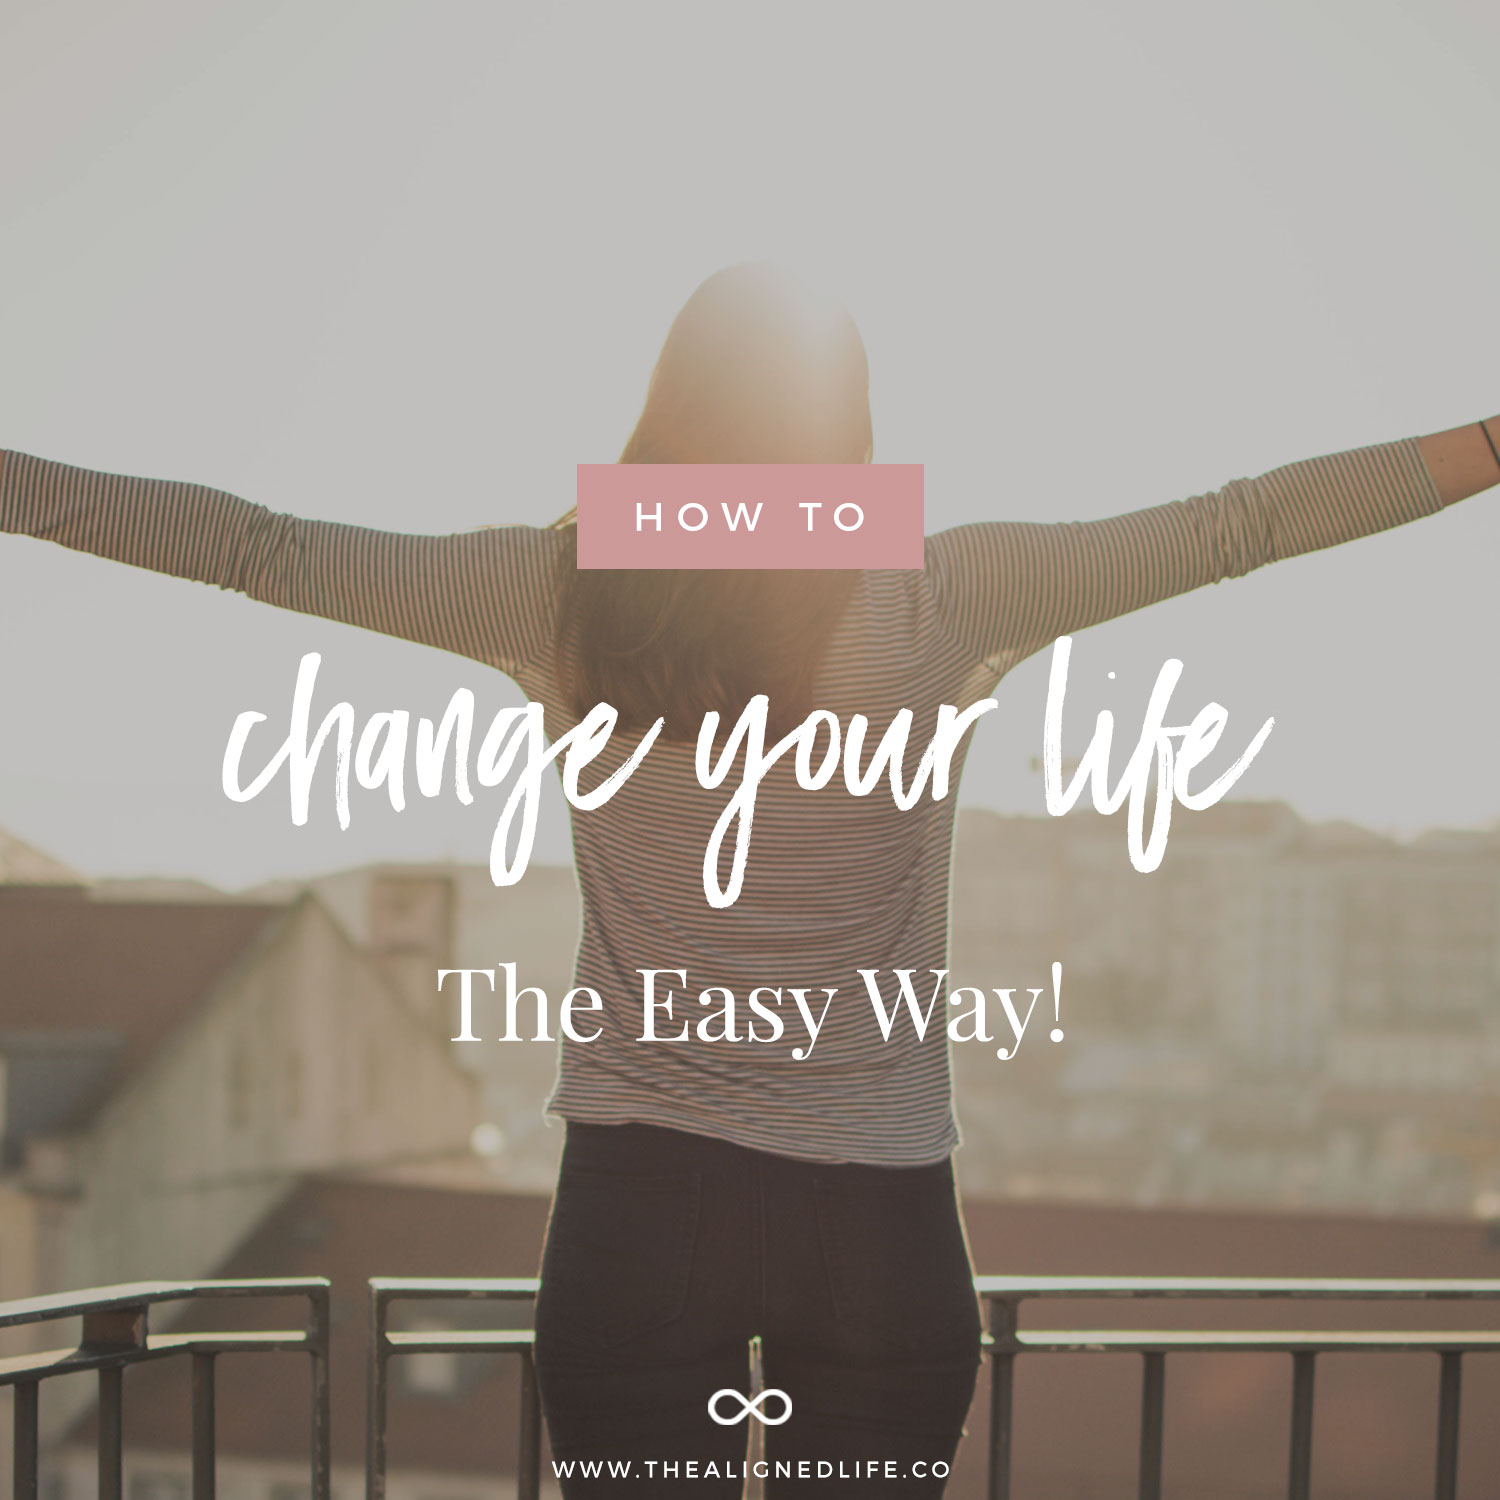 How To Change Your Life The Easy Way